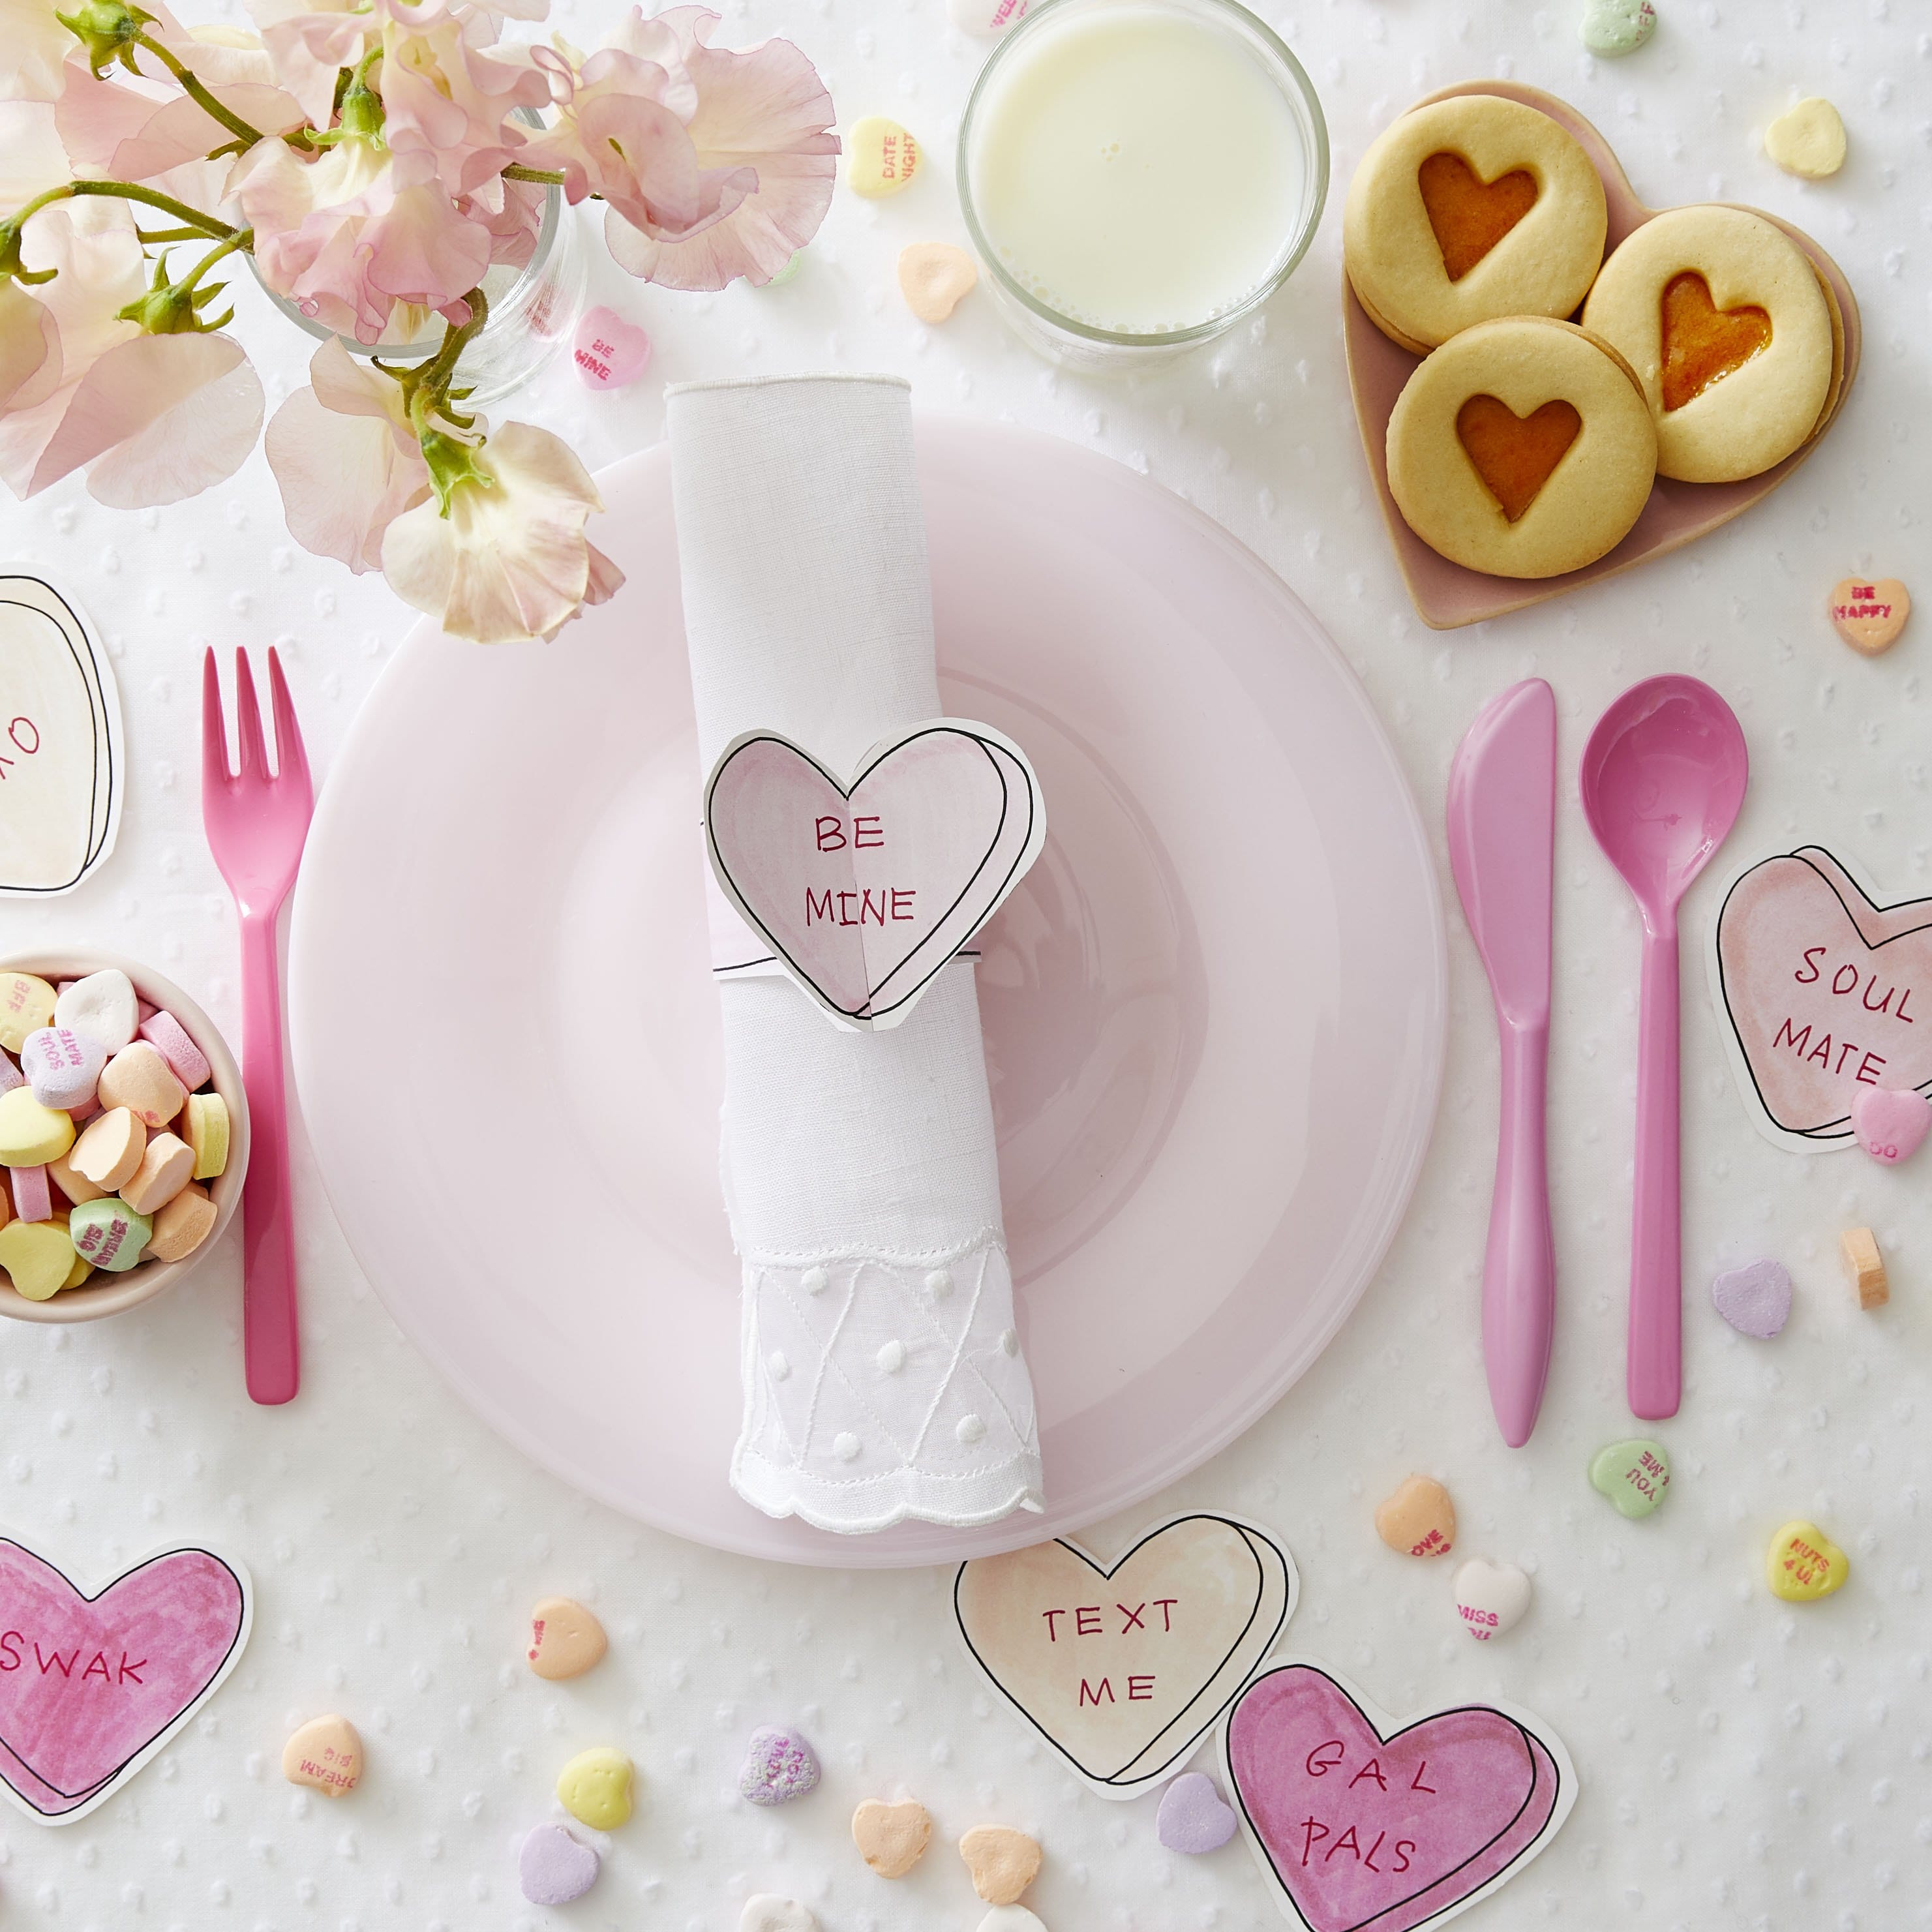 Darcy Miller Designs, Napkin ring, Valentines, love note, conversation heart, paper heart, candy heart, napkin ring, paper table setting, easy, downloadable, hostess, Galentines, be mine, xoxo, Darcy Miller, DIY